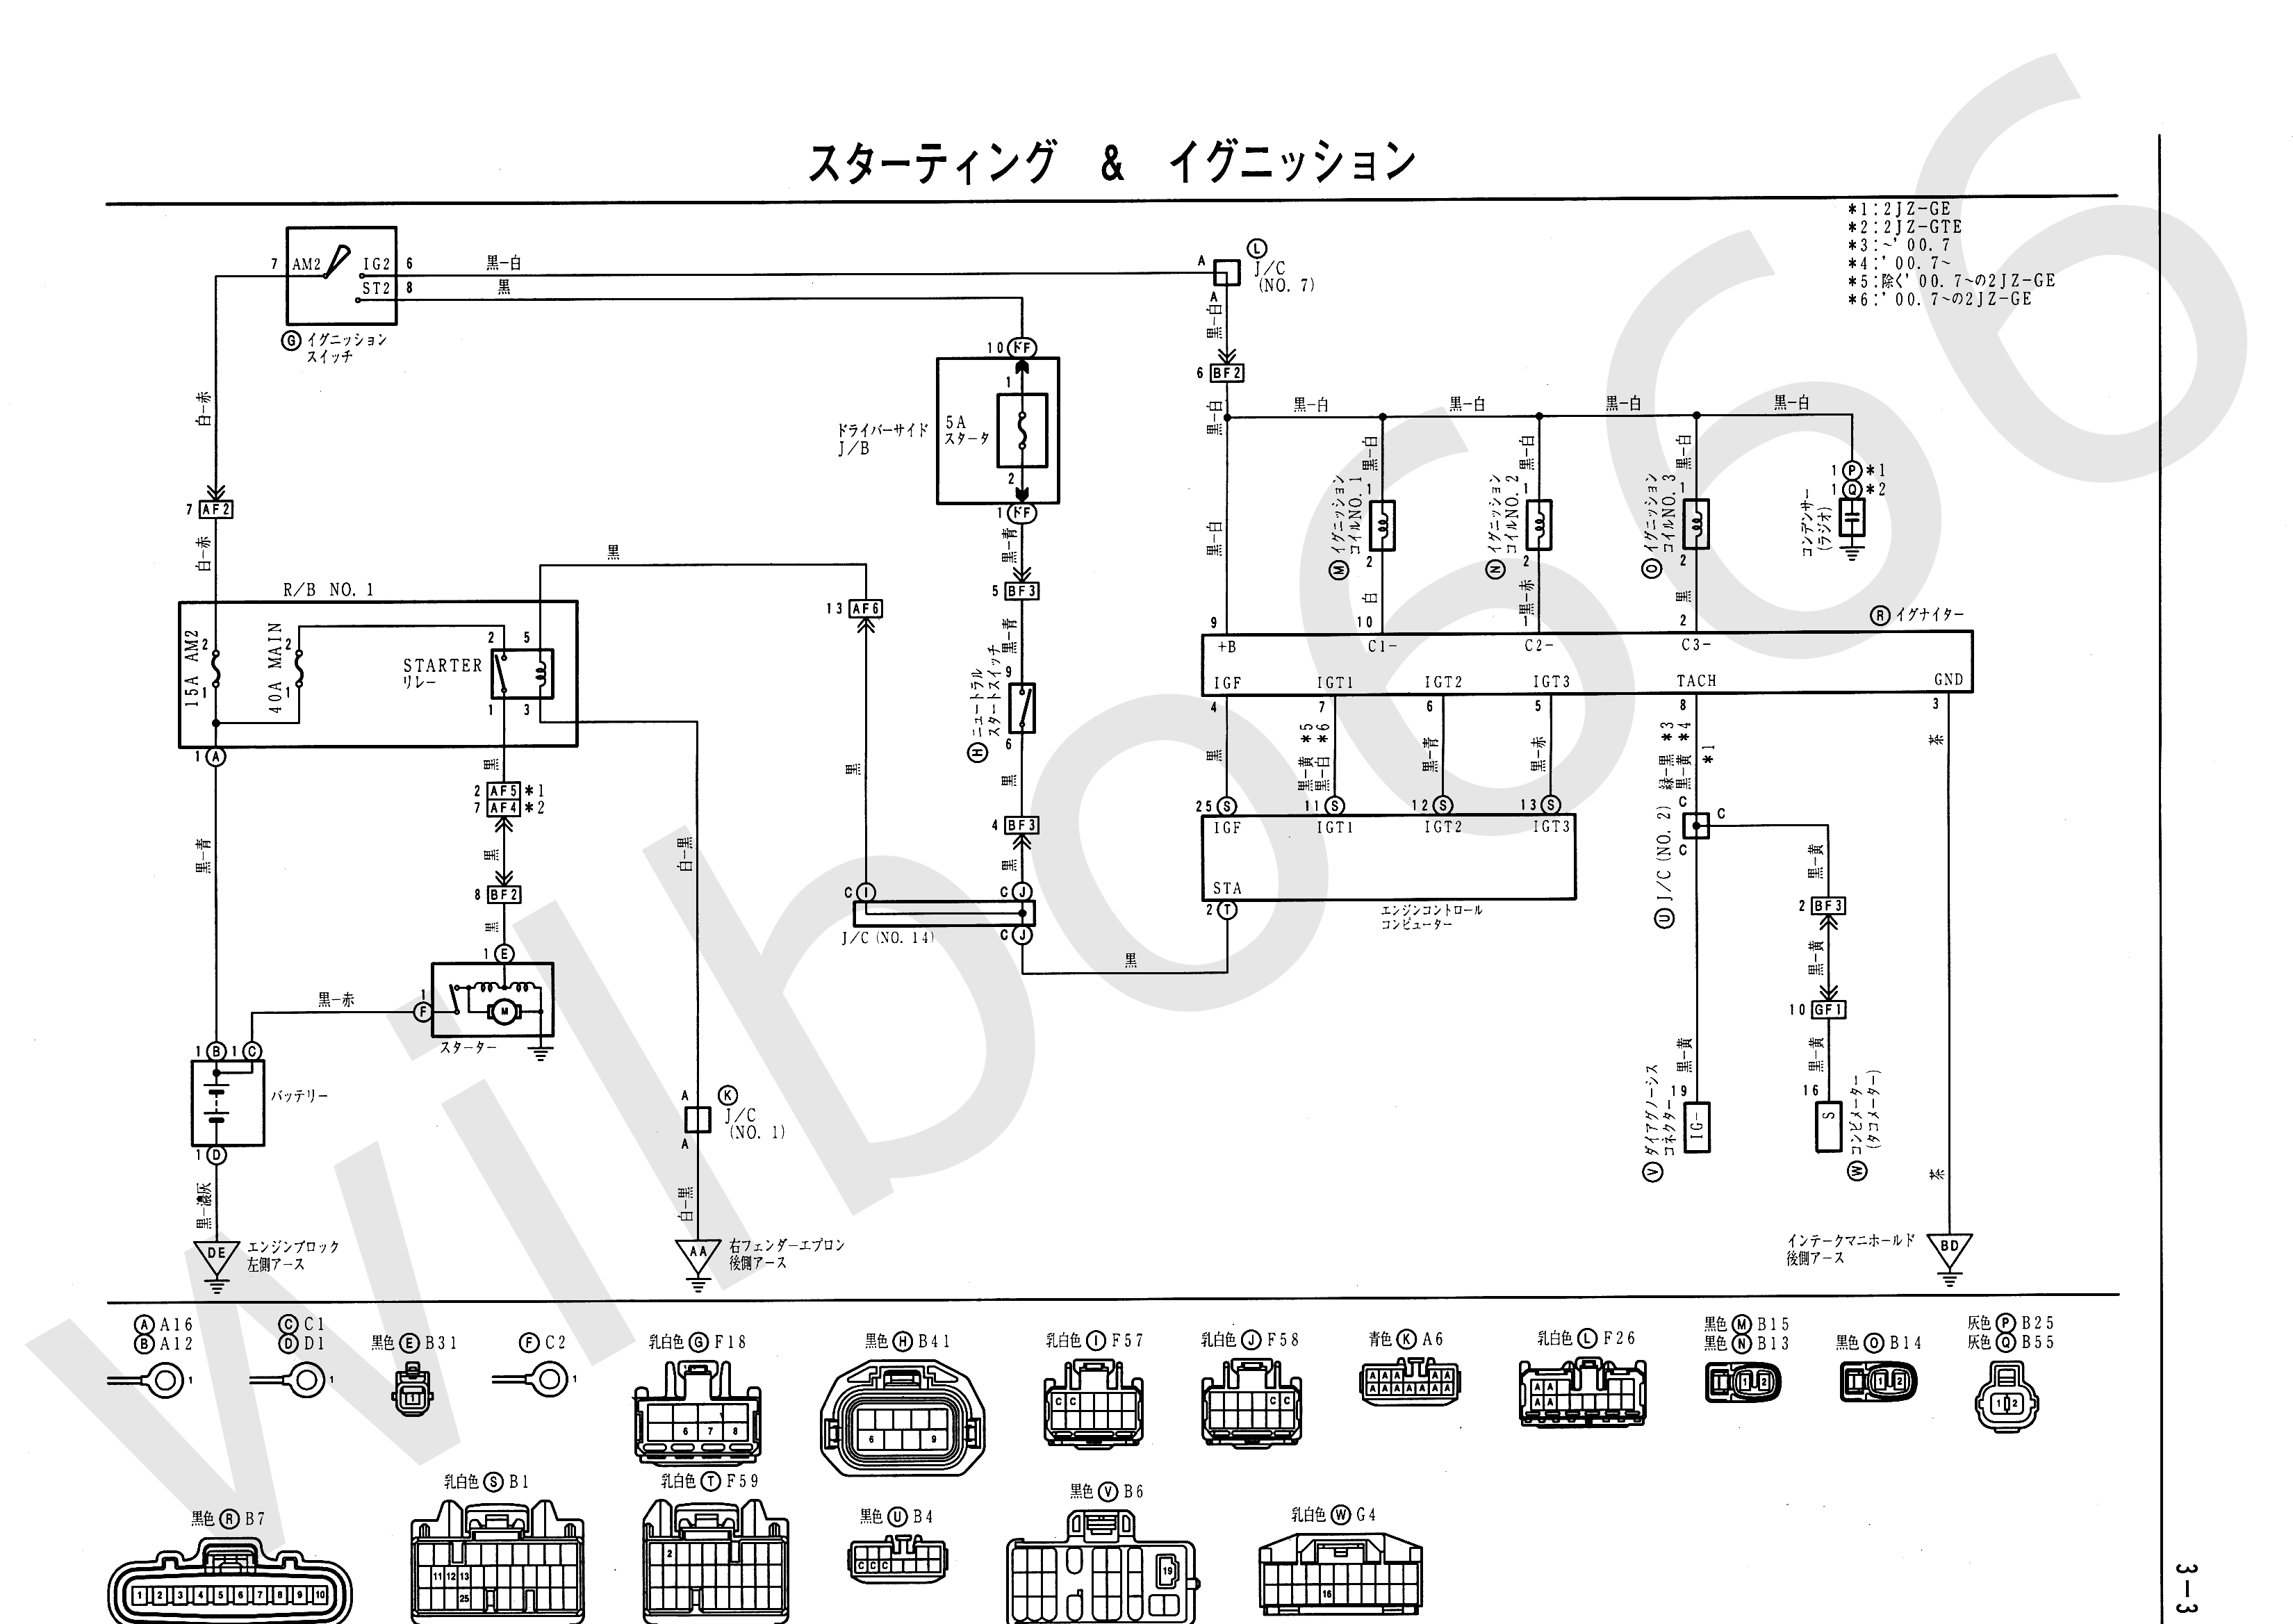 JZS161 Electrical Wiring Diagram 6748505 3 3 wilbo666 2jz gte vvti jzs161 aristo engine wiring  at eliteediting.co